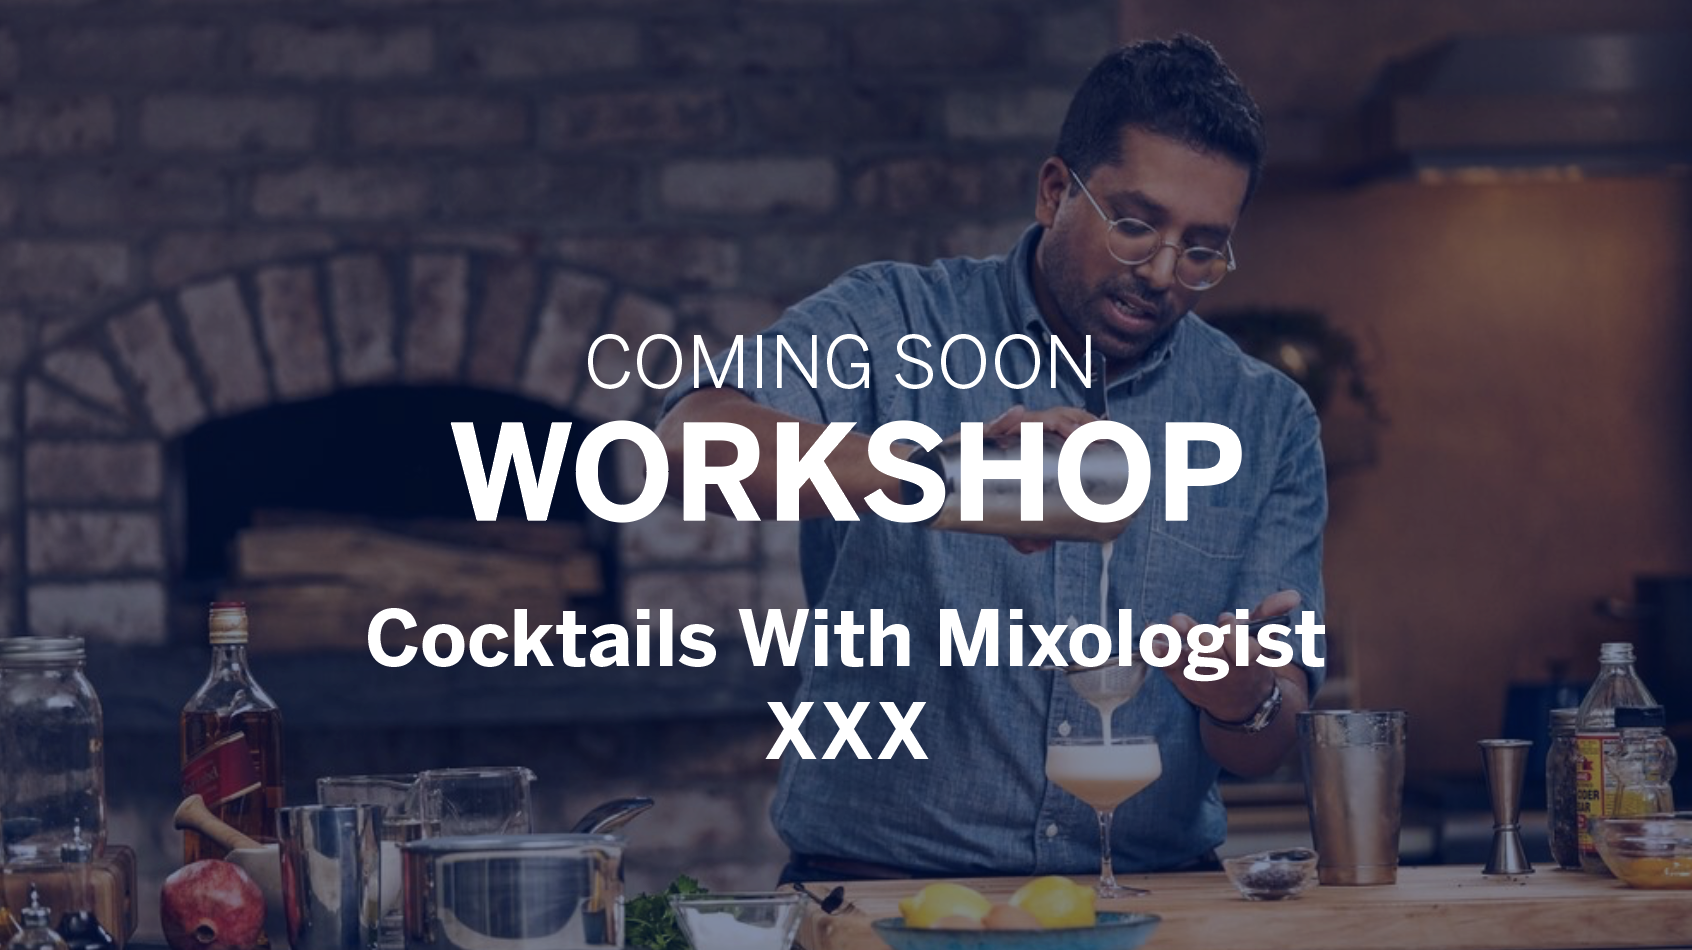 Workshop - Cocktails With Mixologist XXX